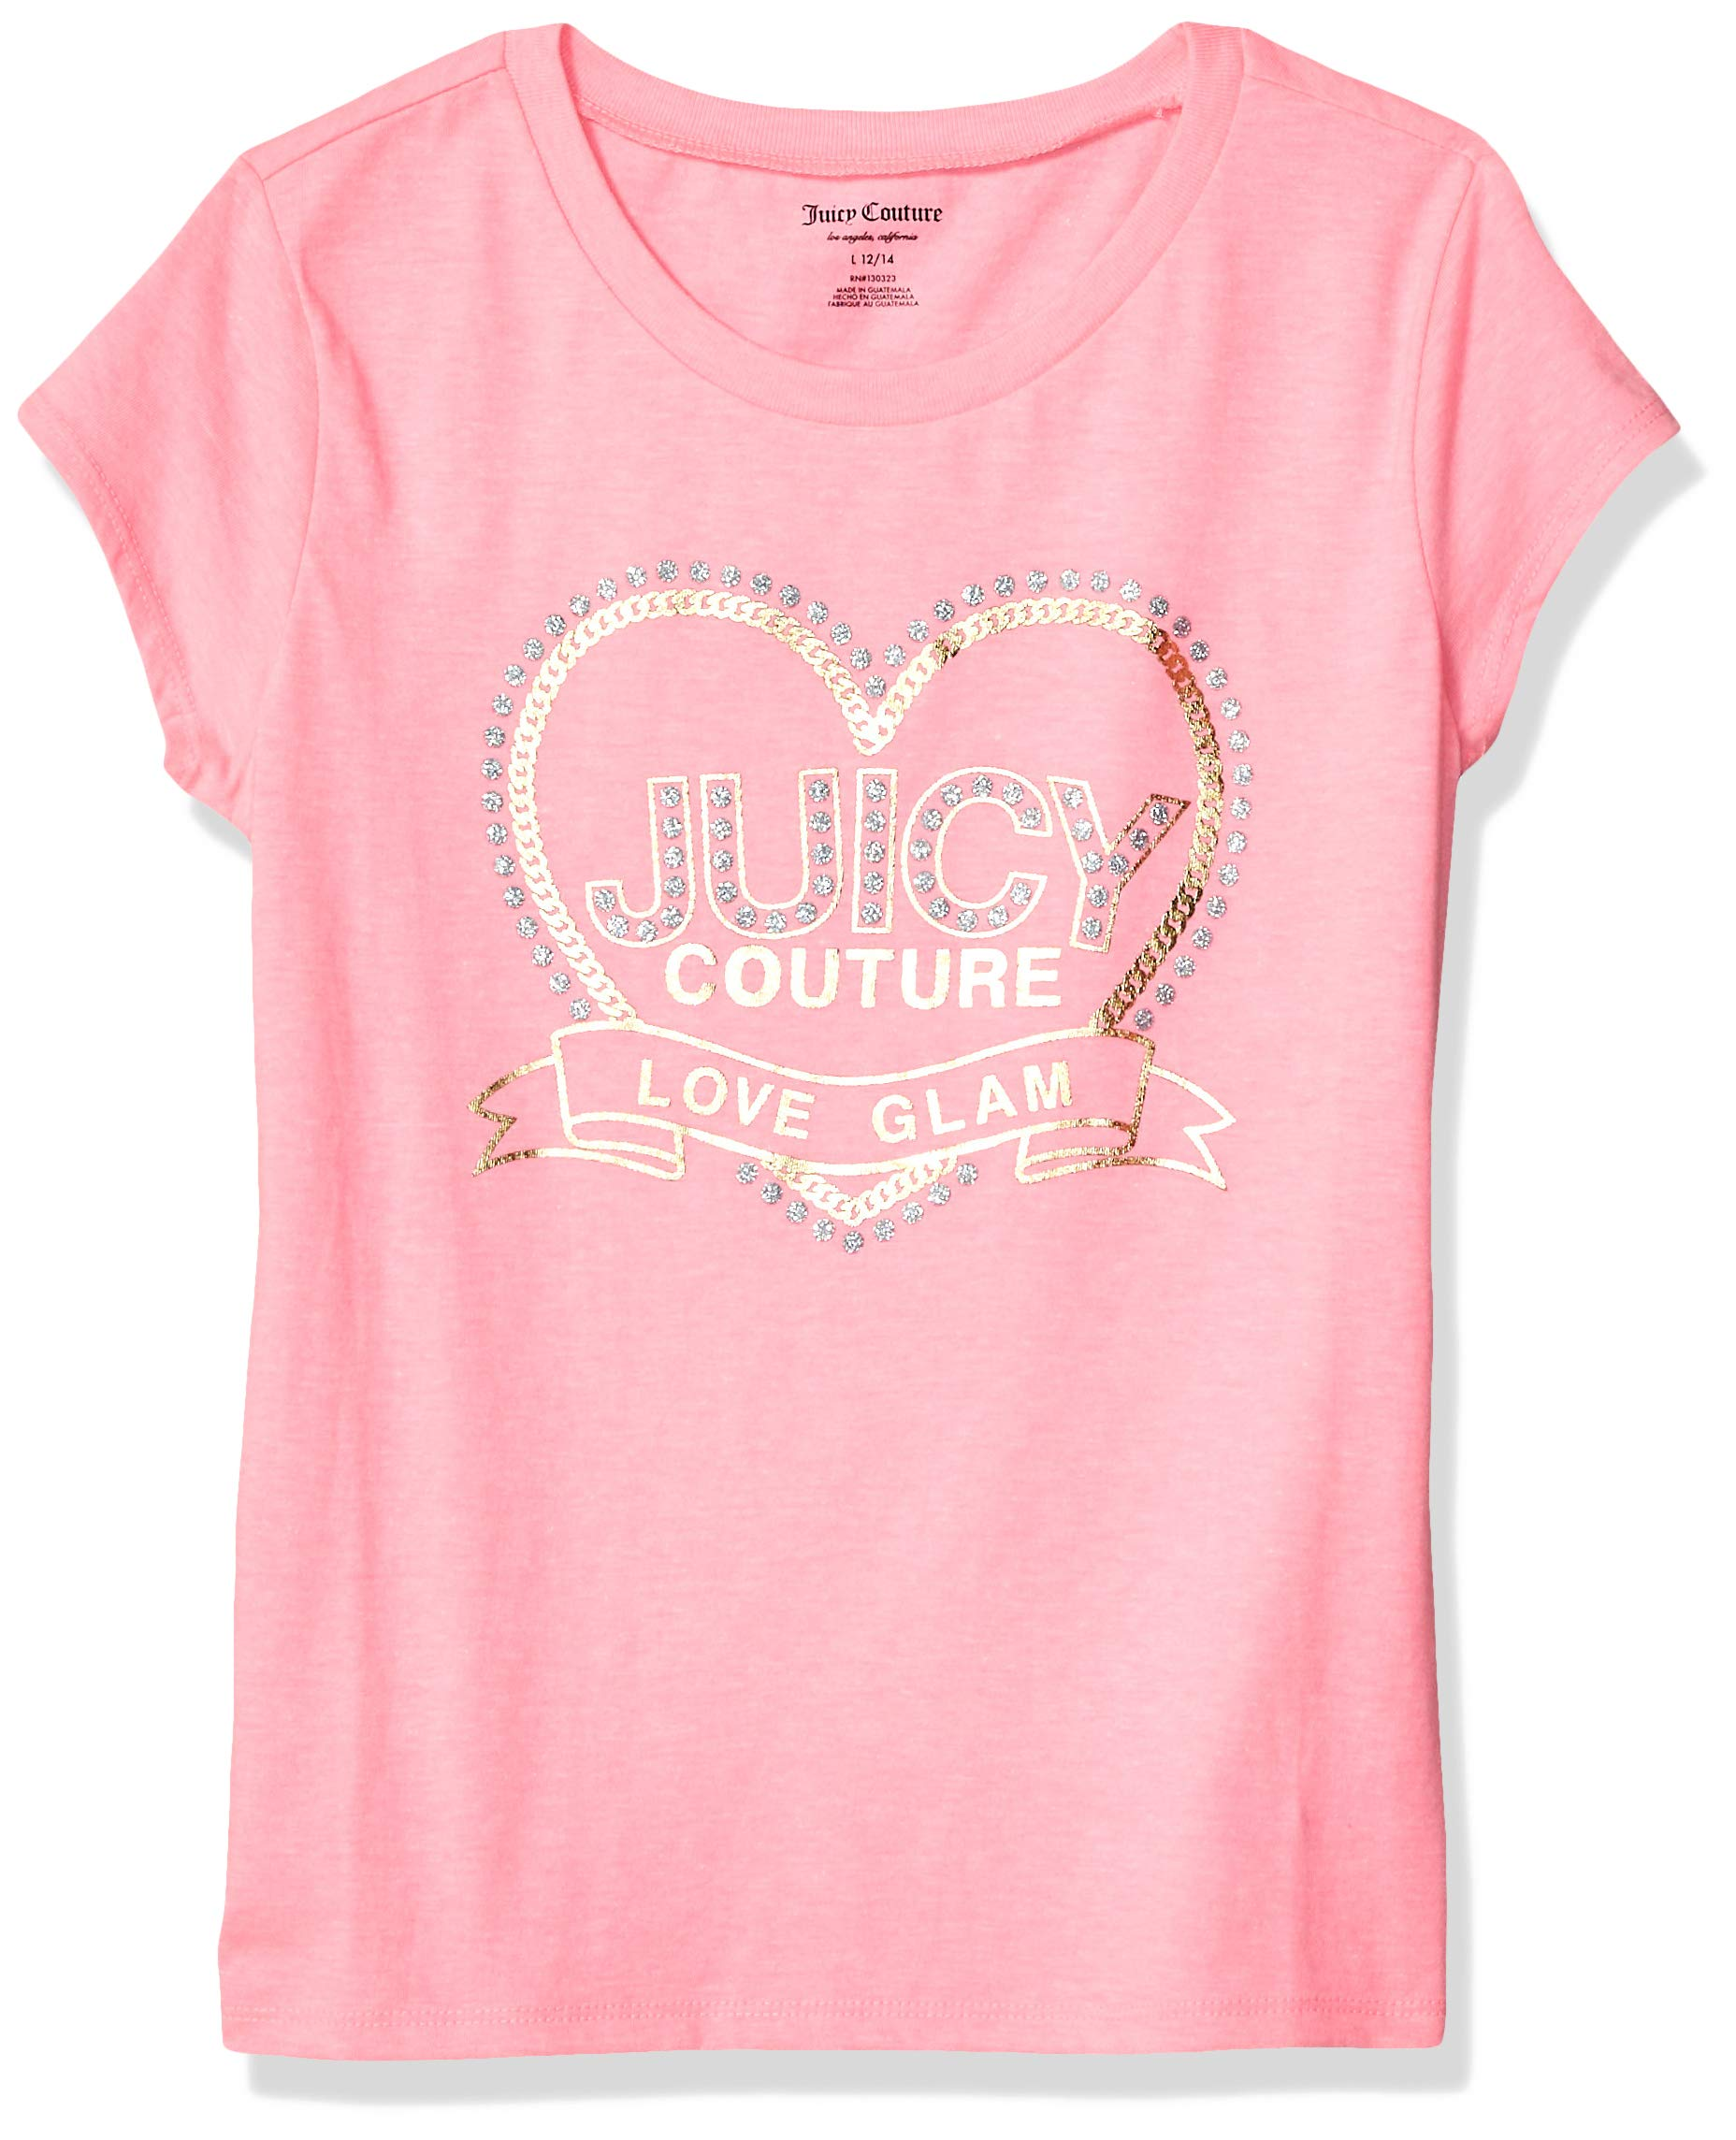 Juicy Couture Girls' Fashion Tee